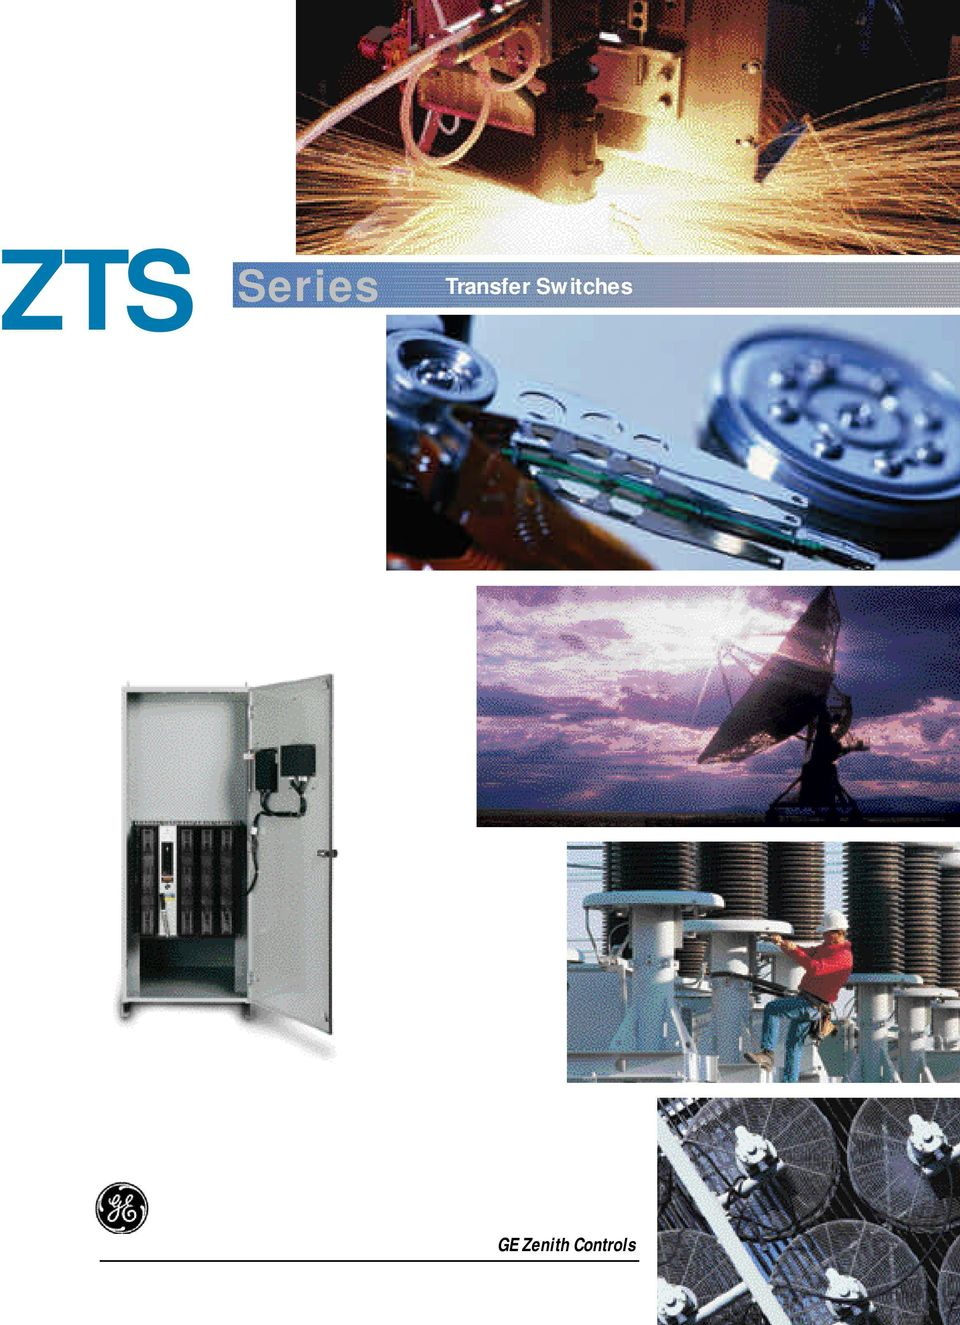 medium resolution of 2 zts series power ontrol equipment quality assurance from start to shipment since 92 ge zenith has designed products with customer satisfaction in mind